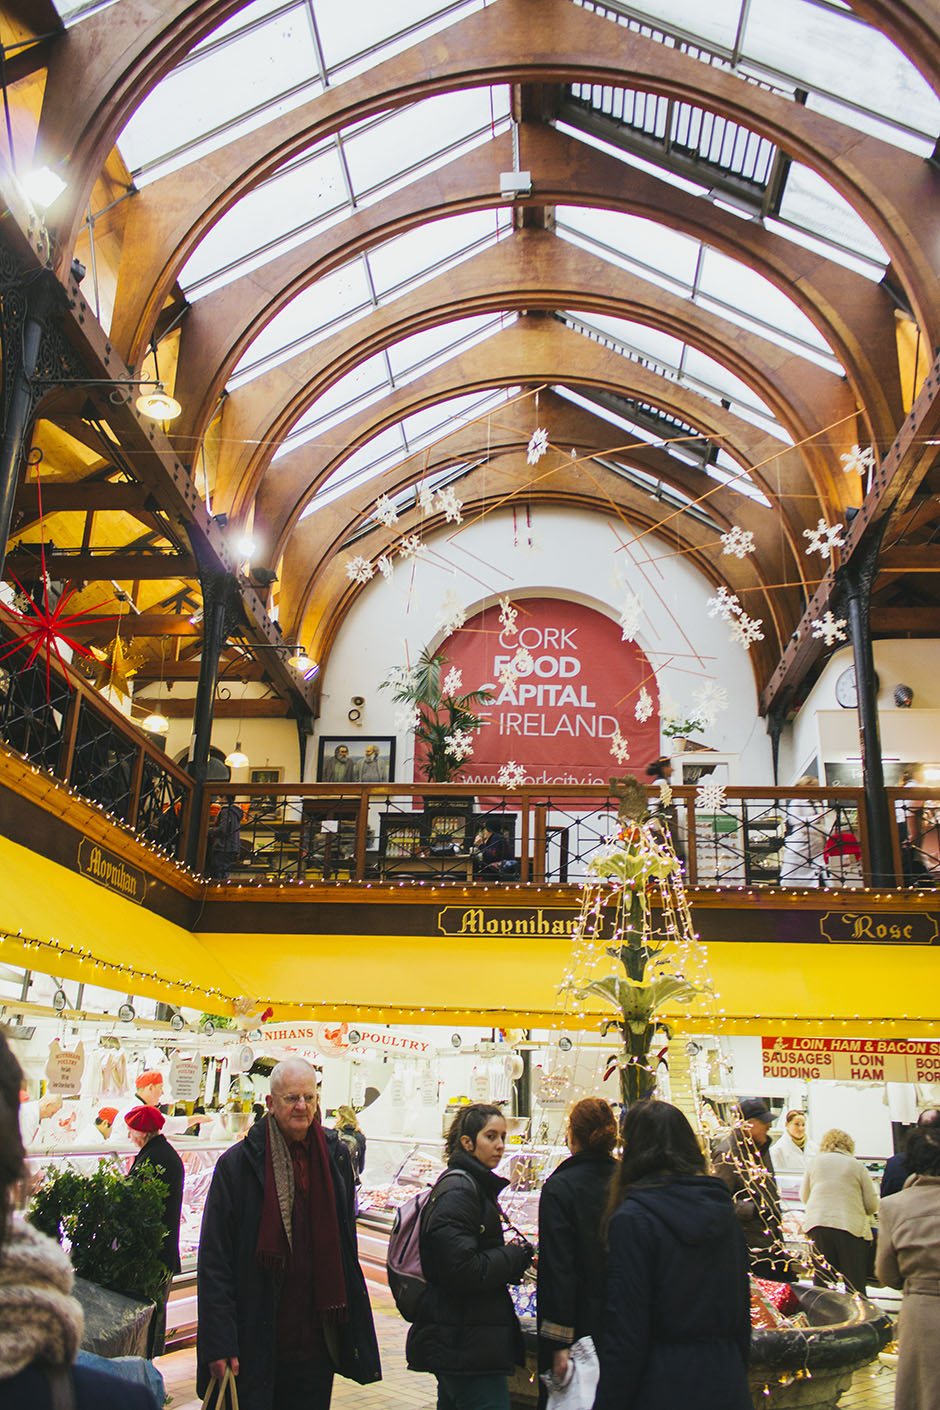 at the english market in cork.